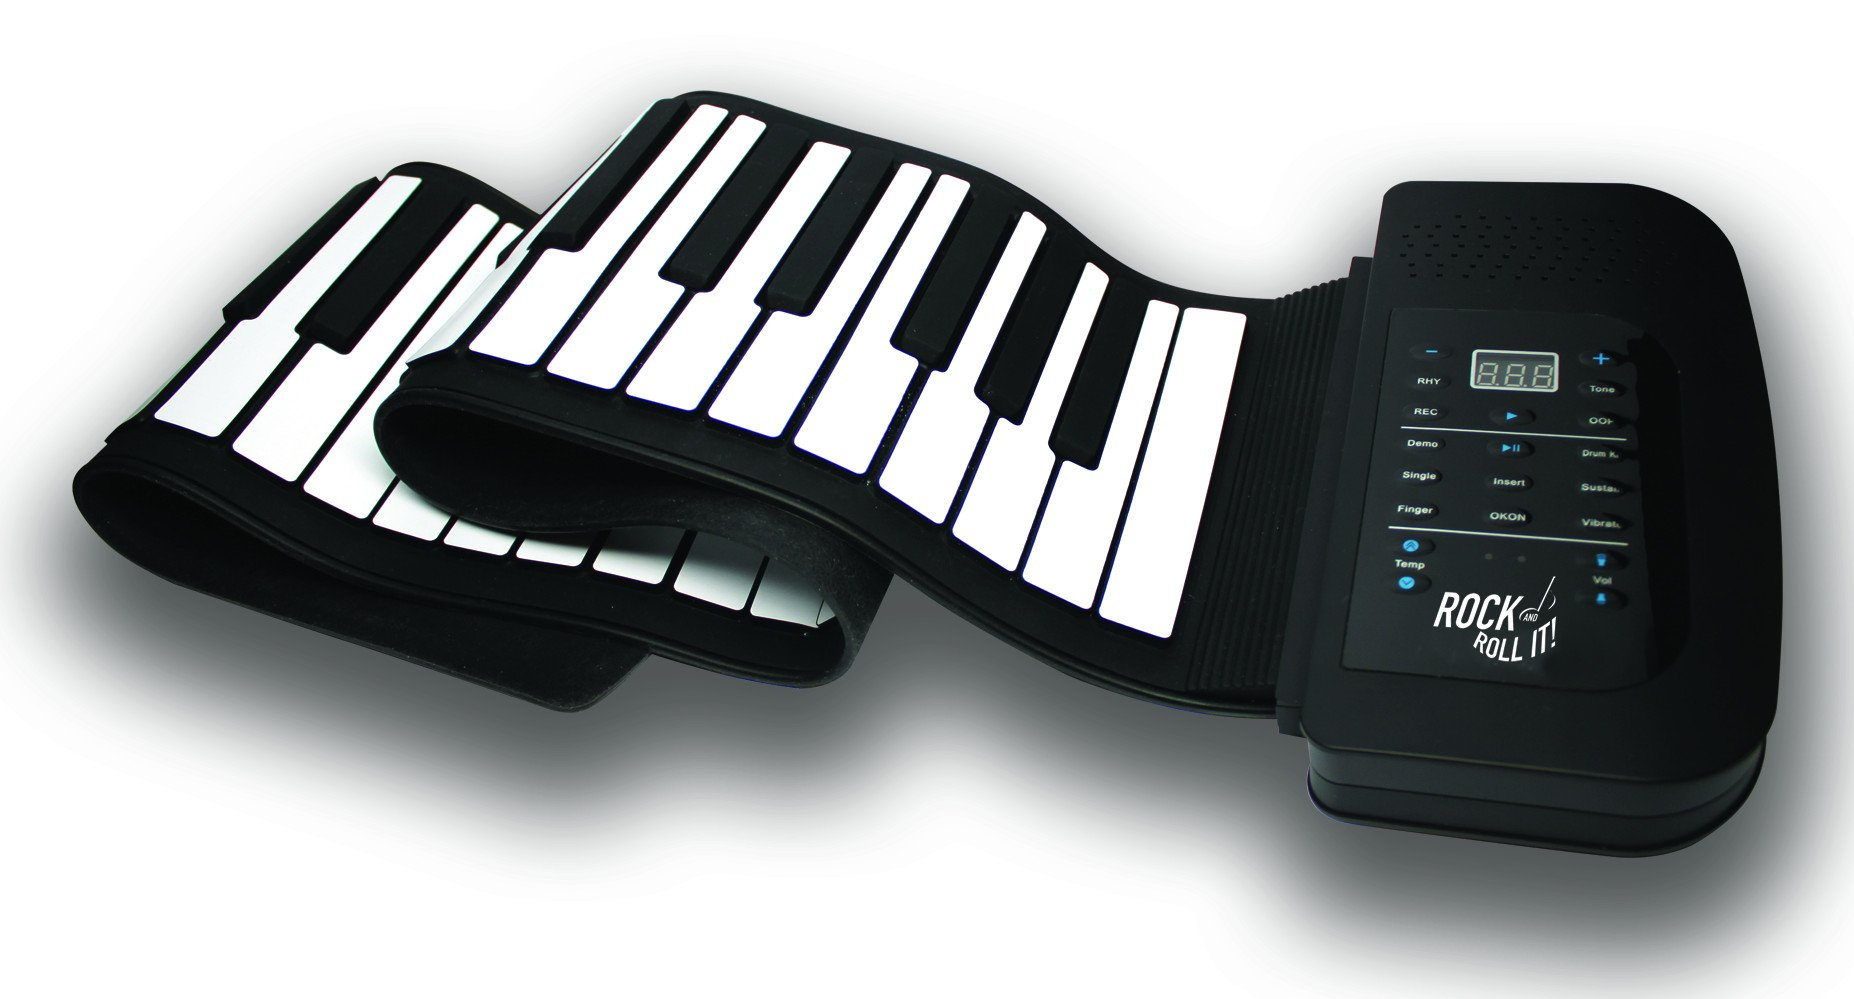 Rock And Roll It - Studio Piano. Flexible, Completely Portable, 61 Standard Size Keys, Rechargeable Battery + USB Powered, AND Midi Compatible